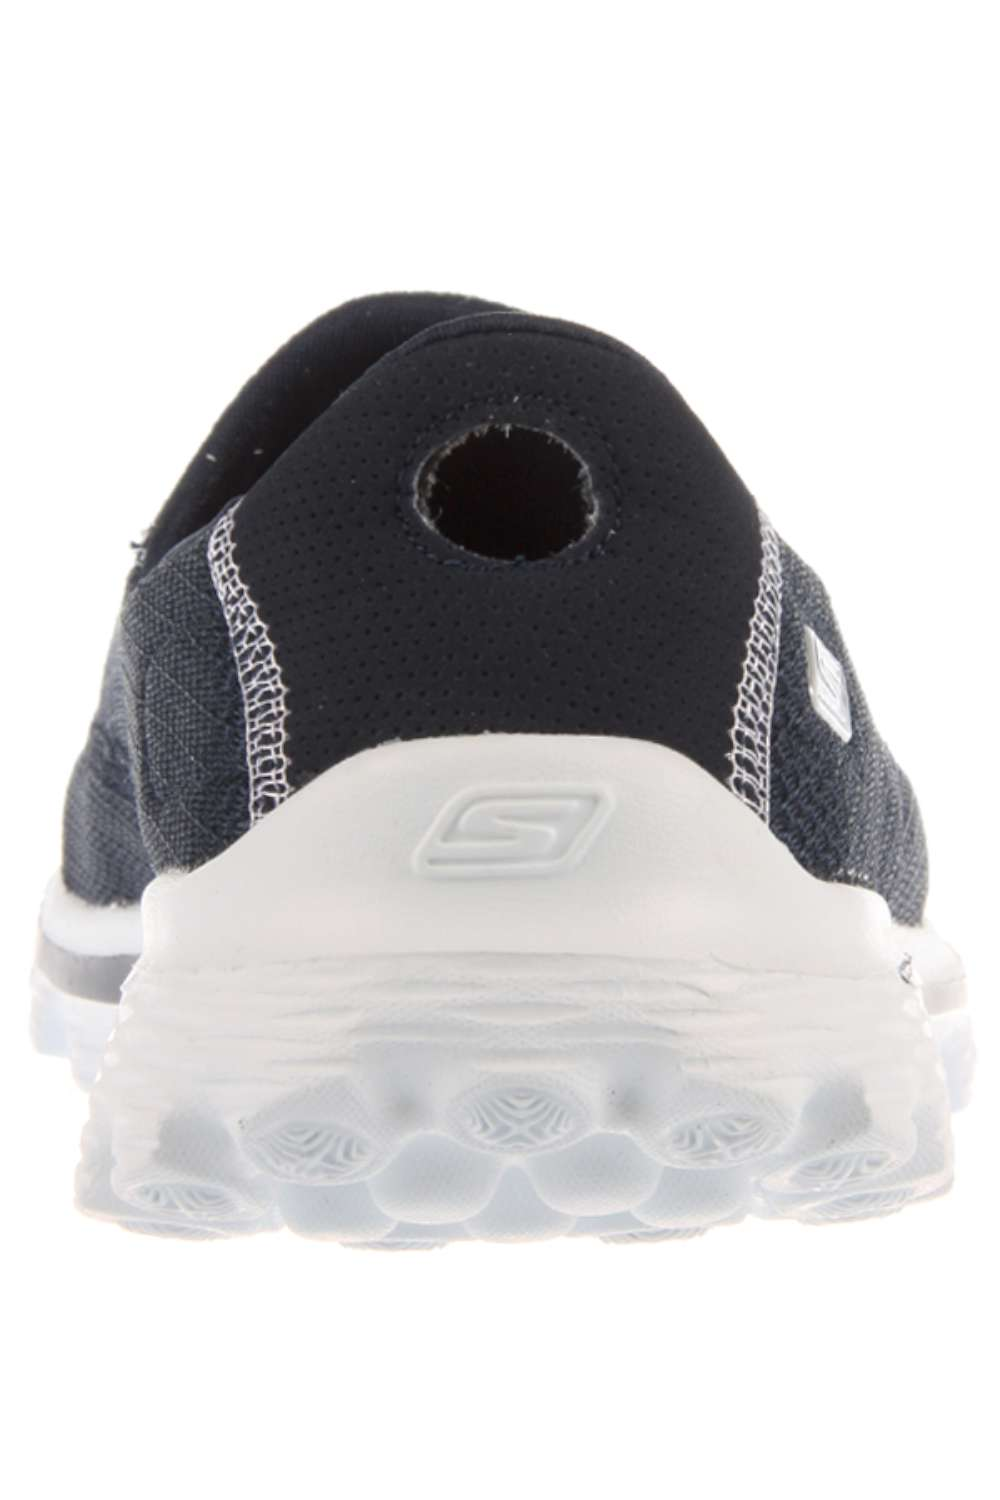 Navy Athletic 6 Womens Us Go Skechers 4 6pht Shoes Walk 2 5 5 Uk wqxgxaY